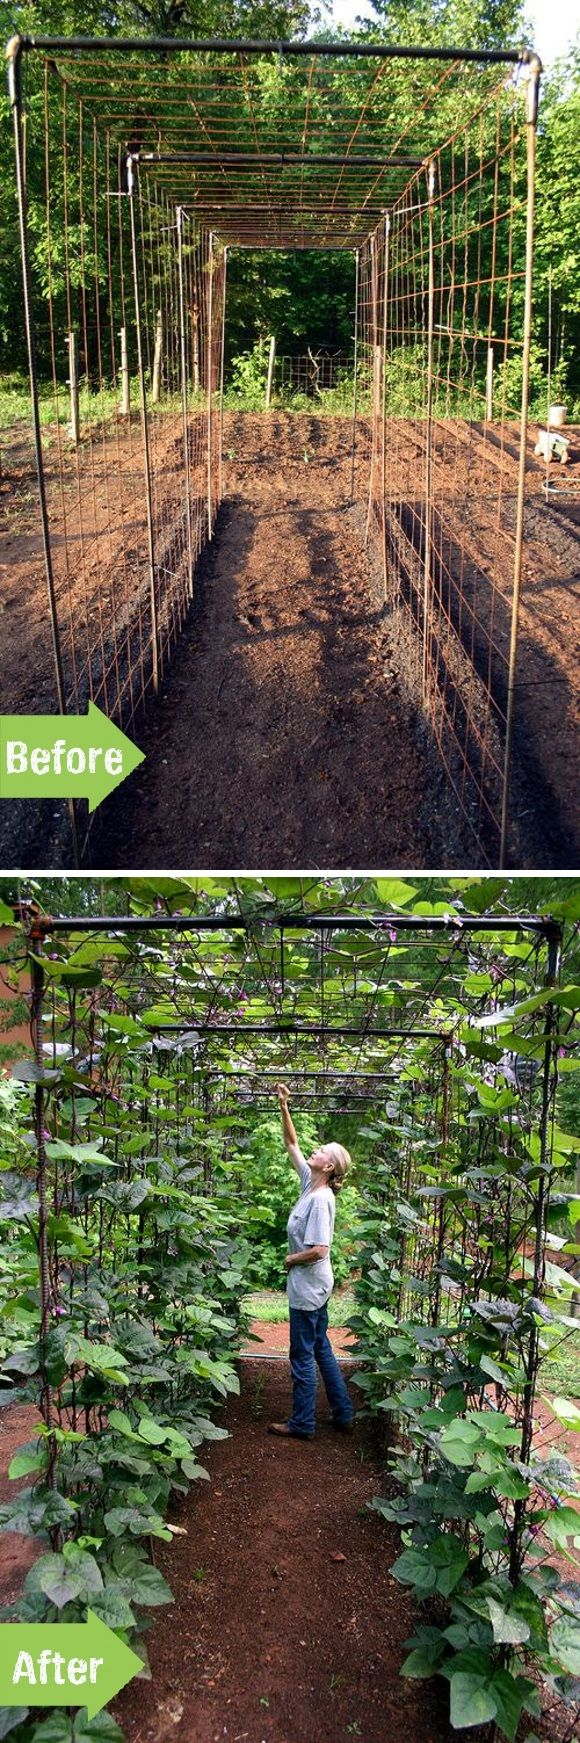 DIY Bean Trellis for any vegetable garden  DIY Bean Trellis for any vegetable garden #gartendeko #deko #gartenkunst #ideen #pinterest  The post DIY Bean Trellis for any vegetable garden appeared first on Woman Casual.